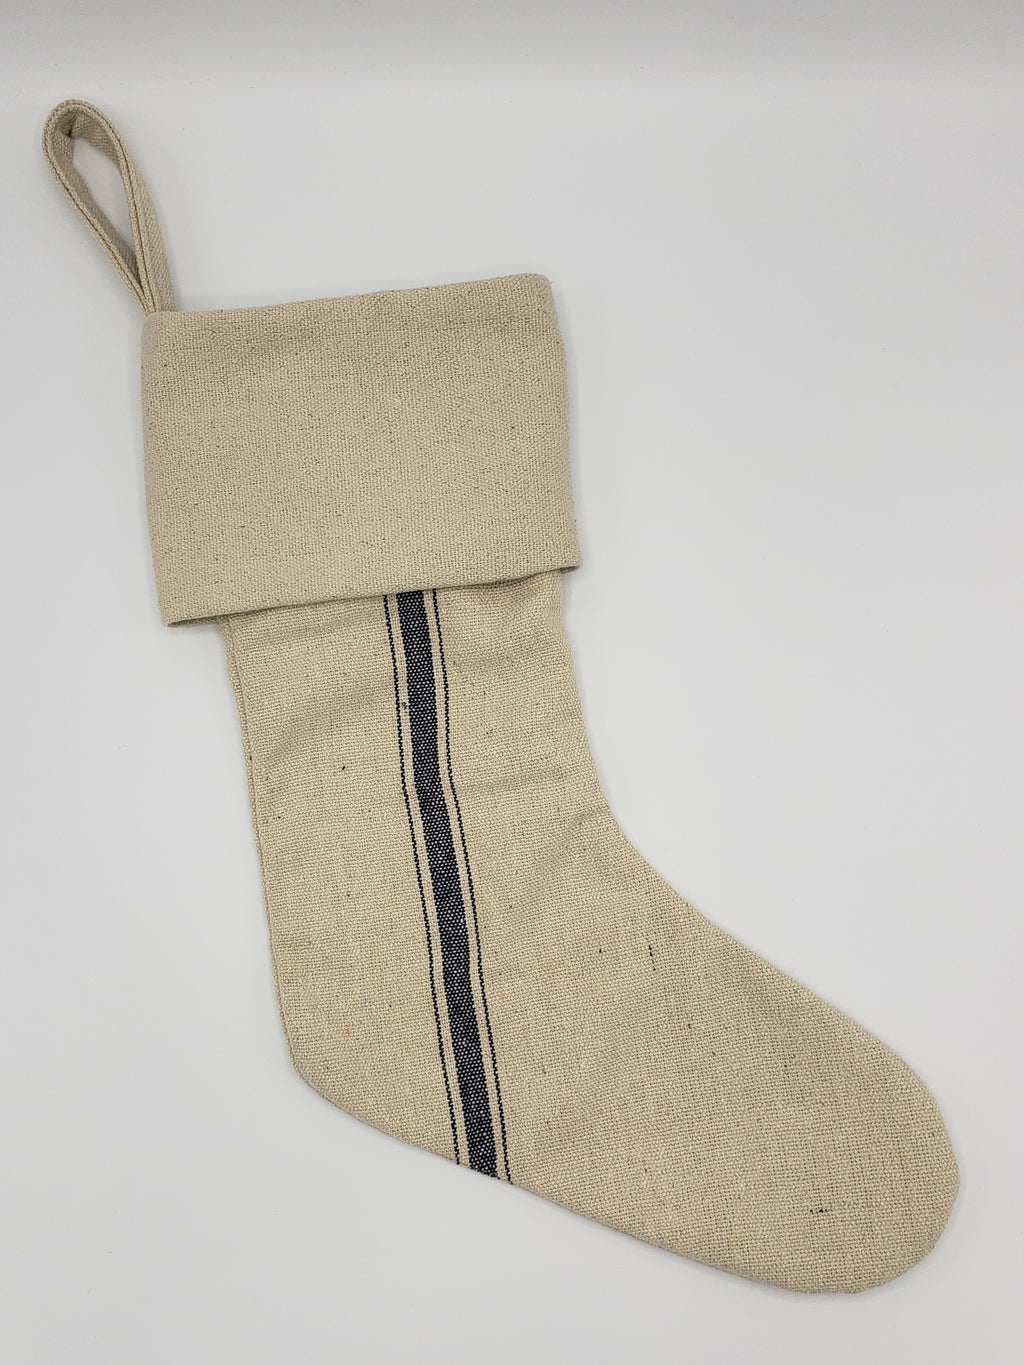 Feed Sack Stocking